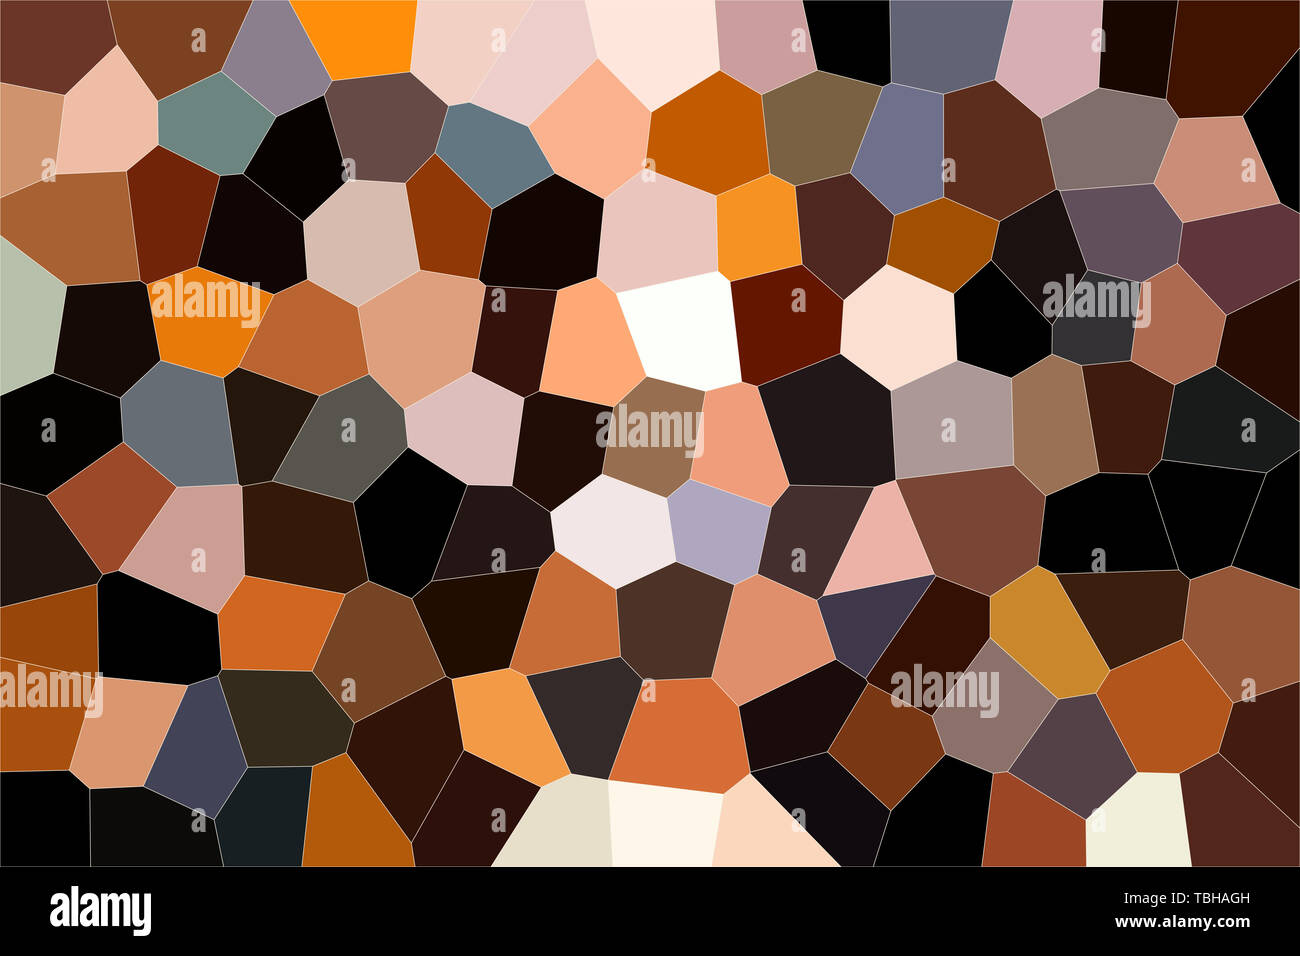 Geometric pattern of dark colors as a mosaic of large tiles of a minimalist design of brown tones, abstract colored texture shape. Stock Photo